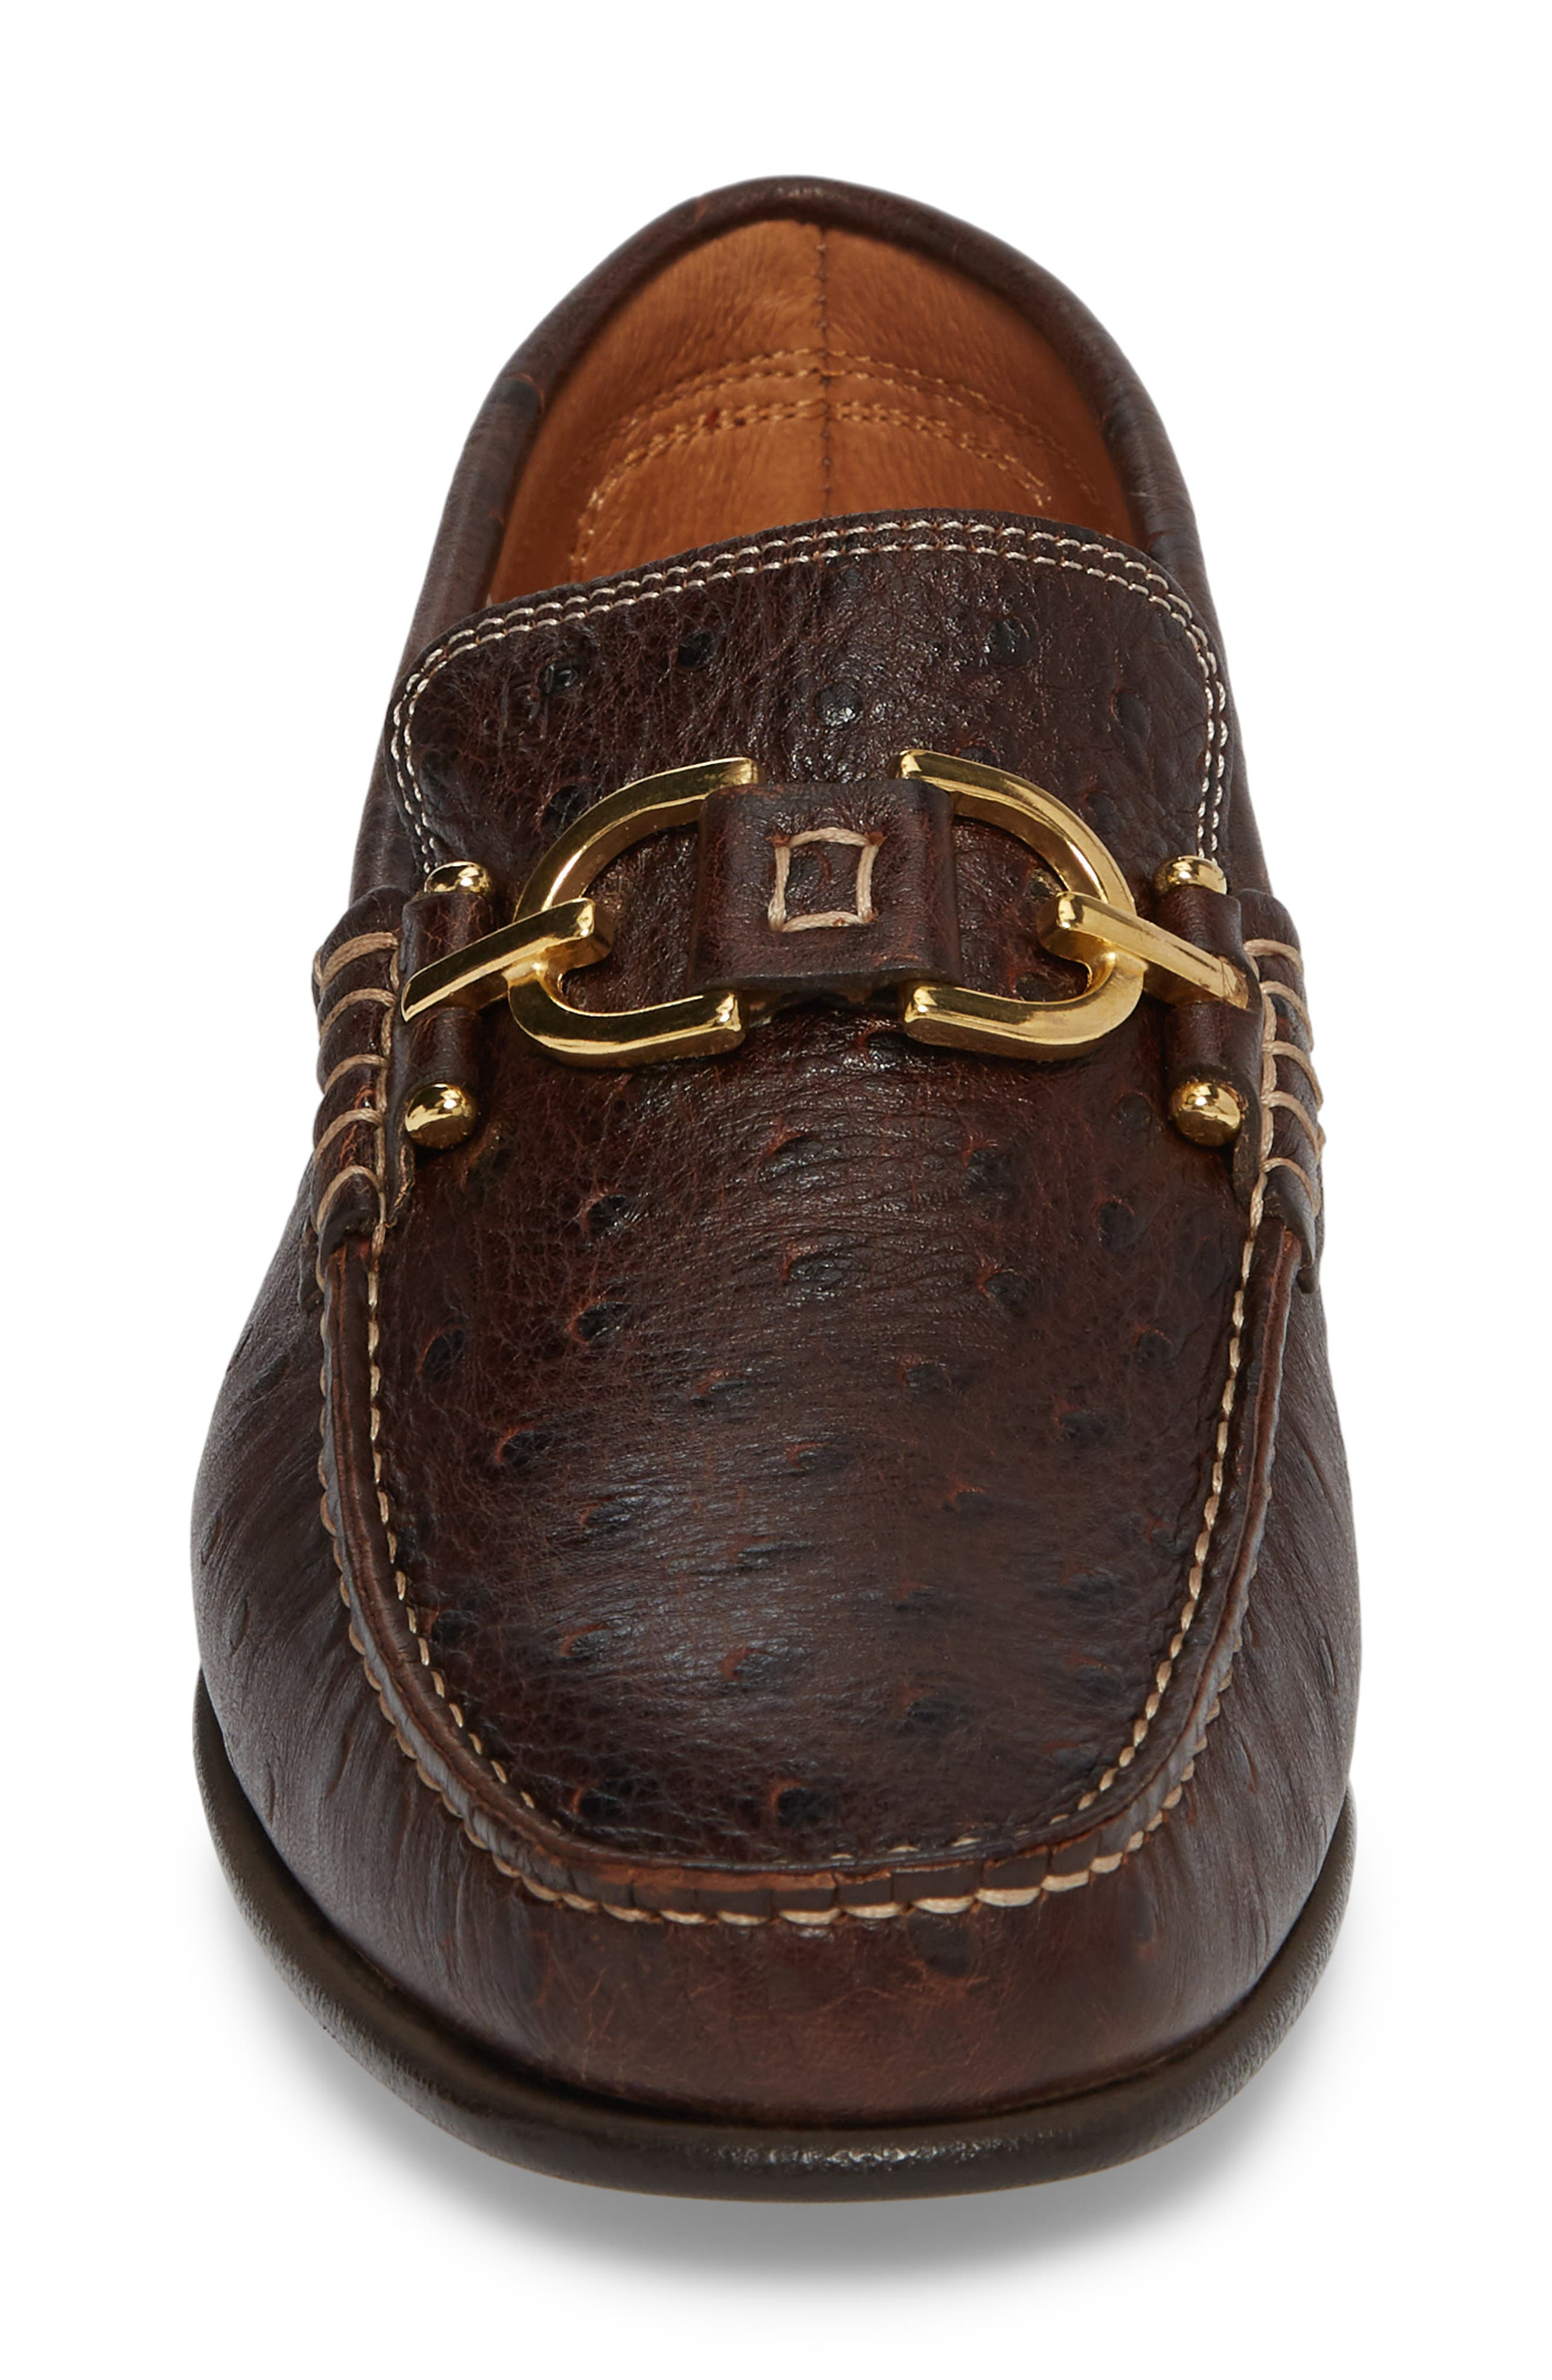 Dacio Square-Toe Loafer,                             Alternate thumbnail 4, color,                             BROWN LEATHER